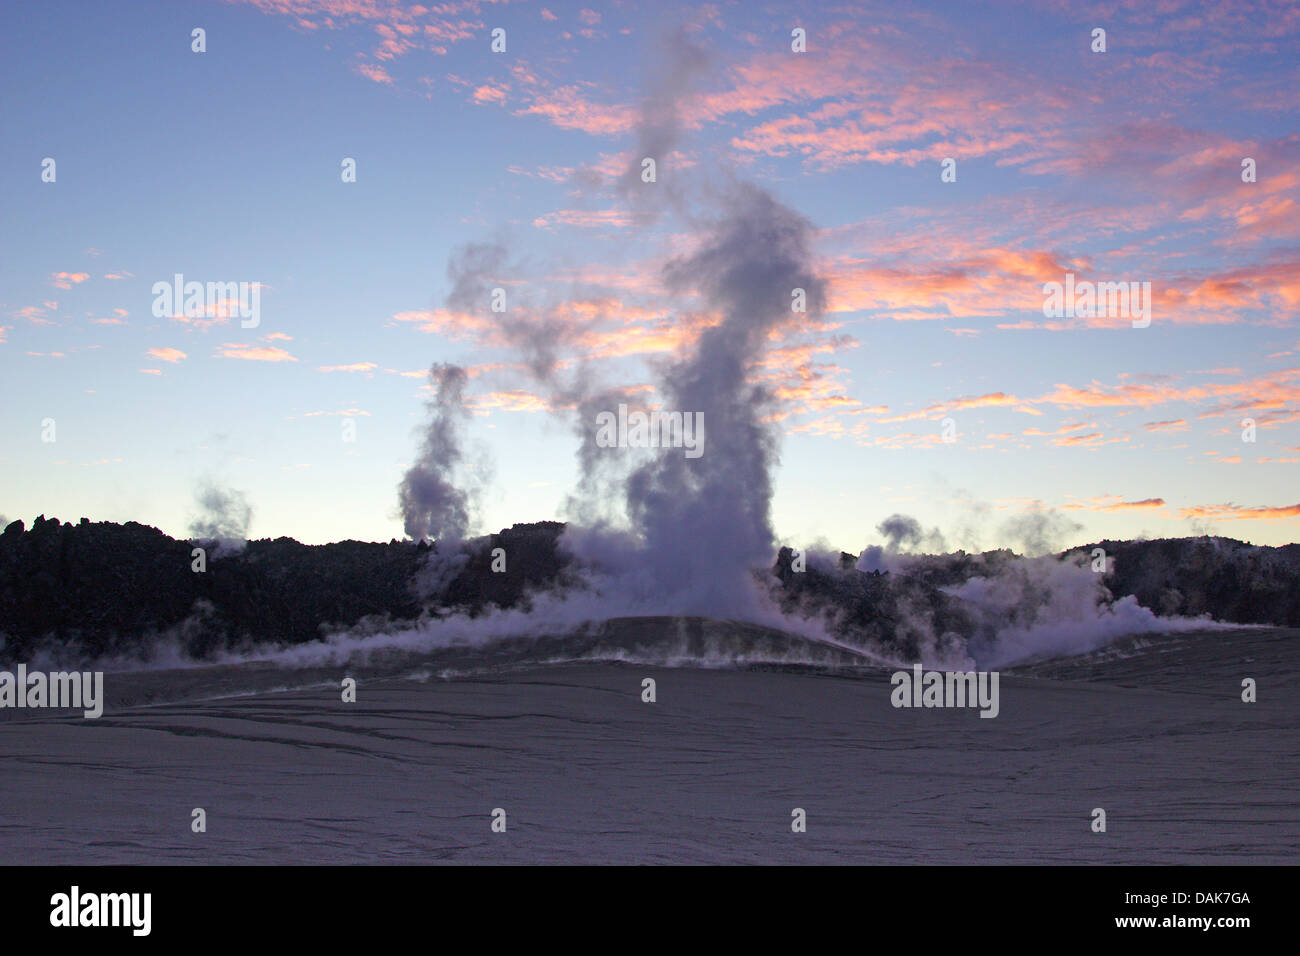 fumarole and stream of lava, Cordon Cualle at Puyehue in evening light, Chile, Patagonia - Stock Image